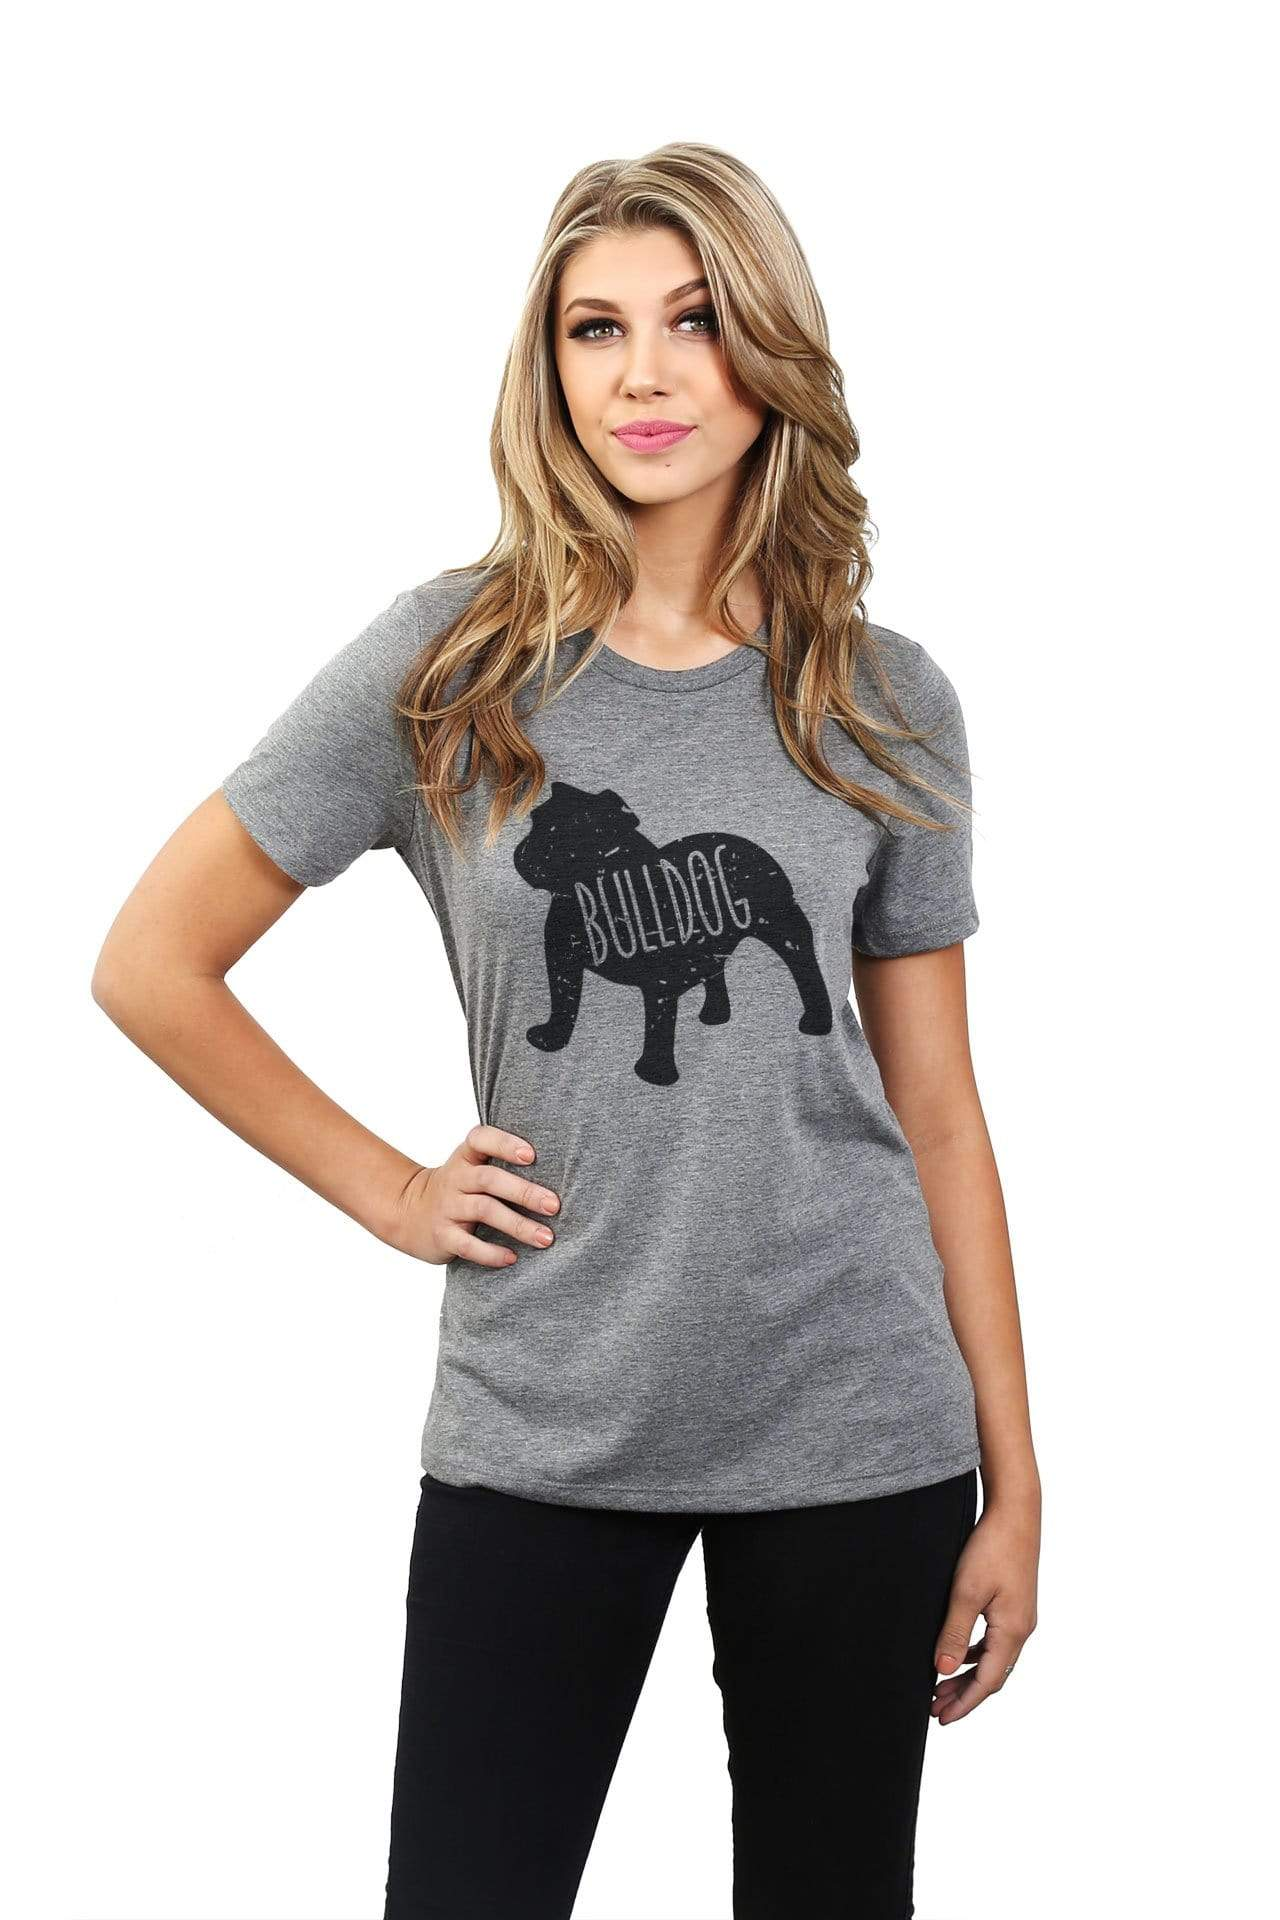 Bulldog Silhouette Graphic Women's Relaxed Crew T-Shirt Heather Grey